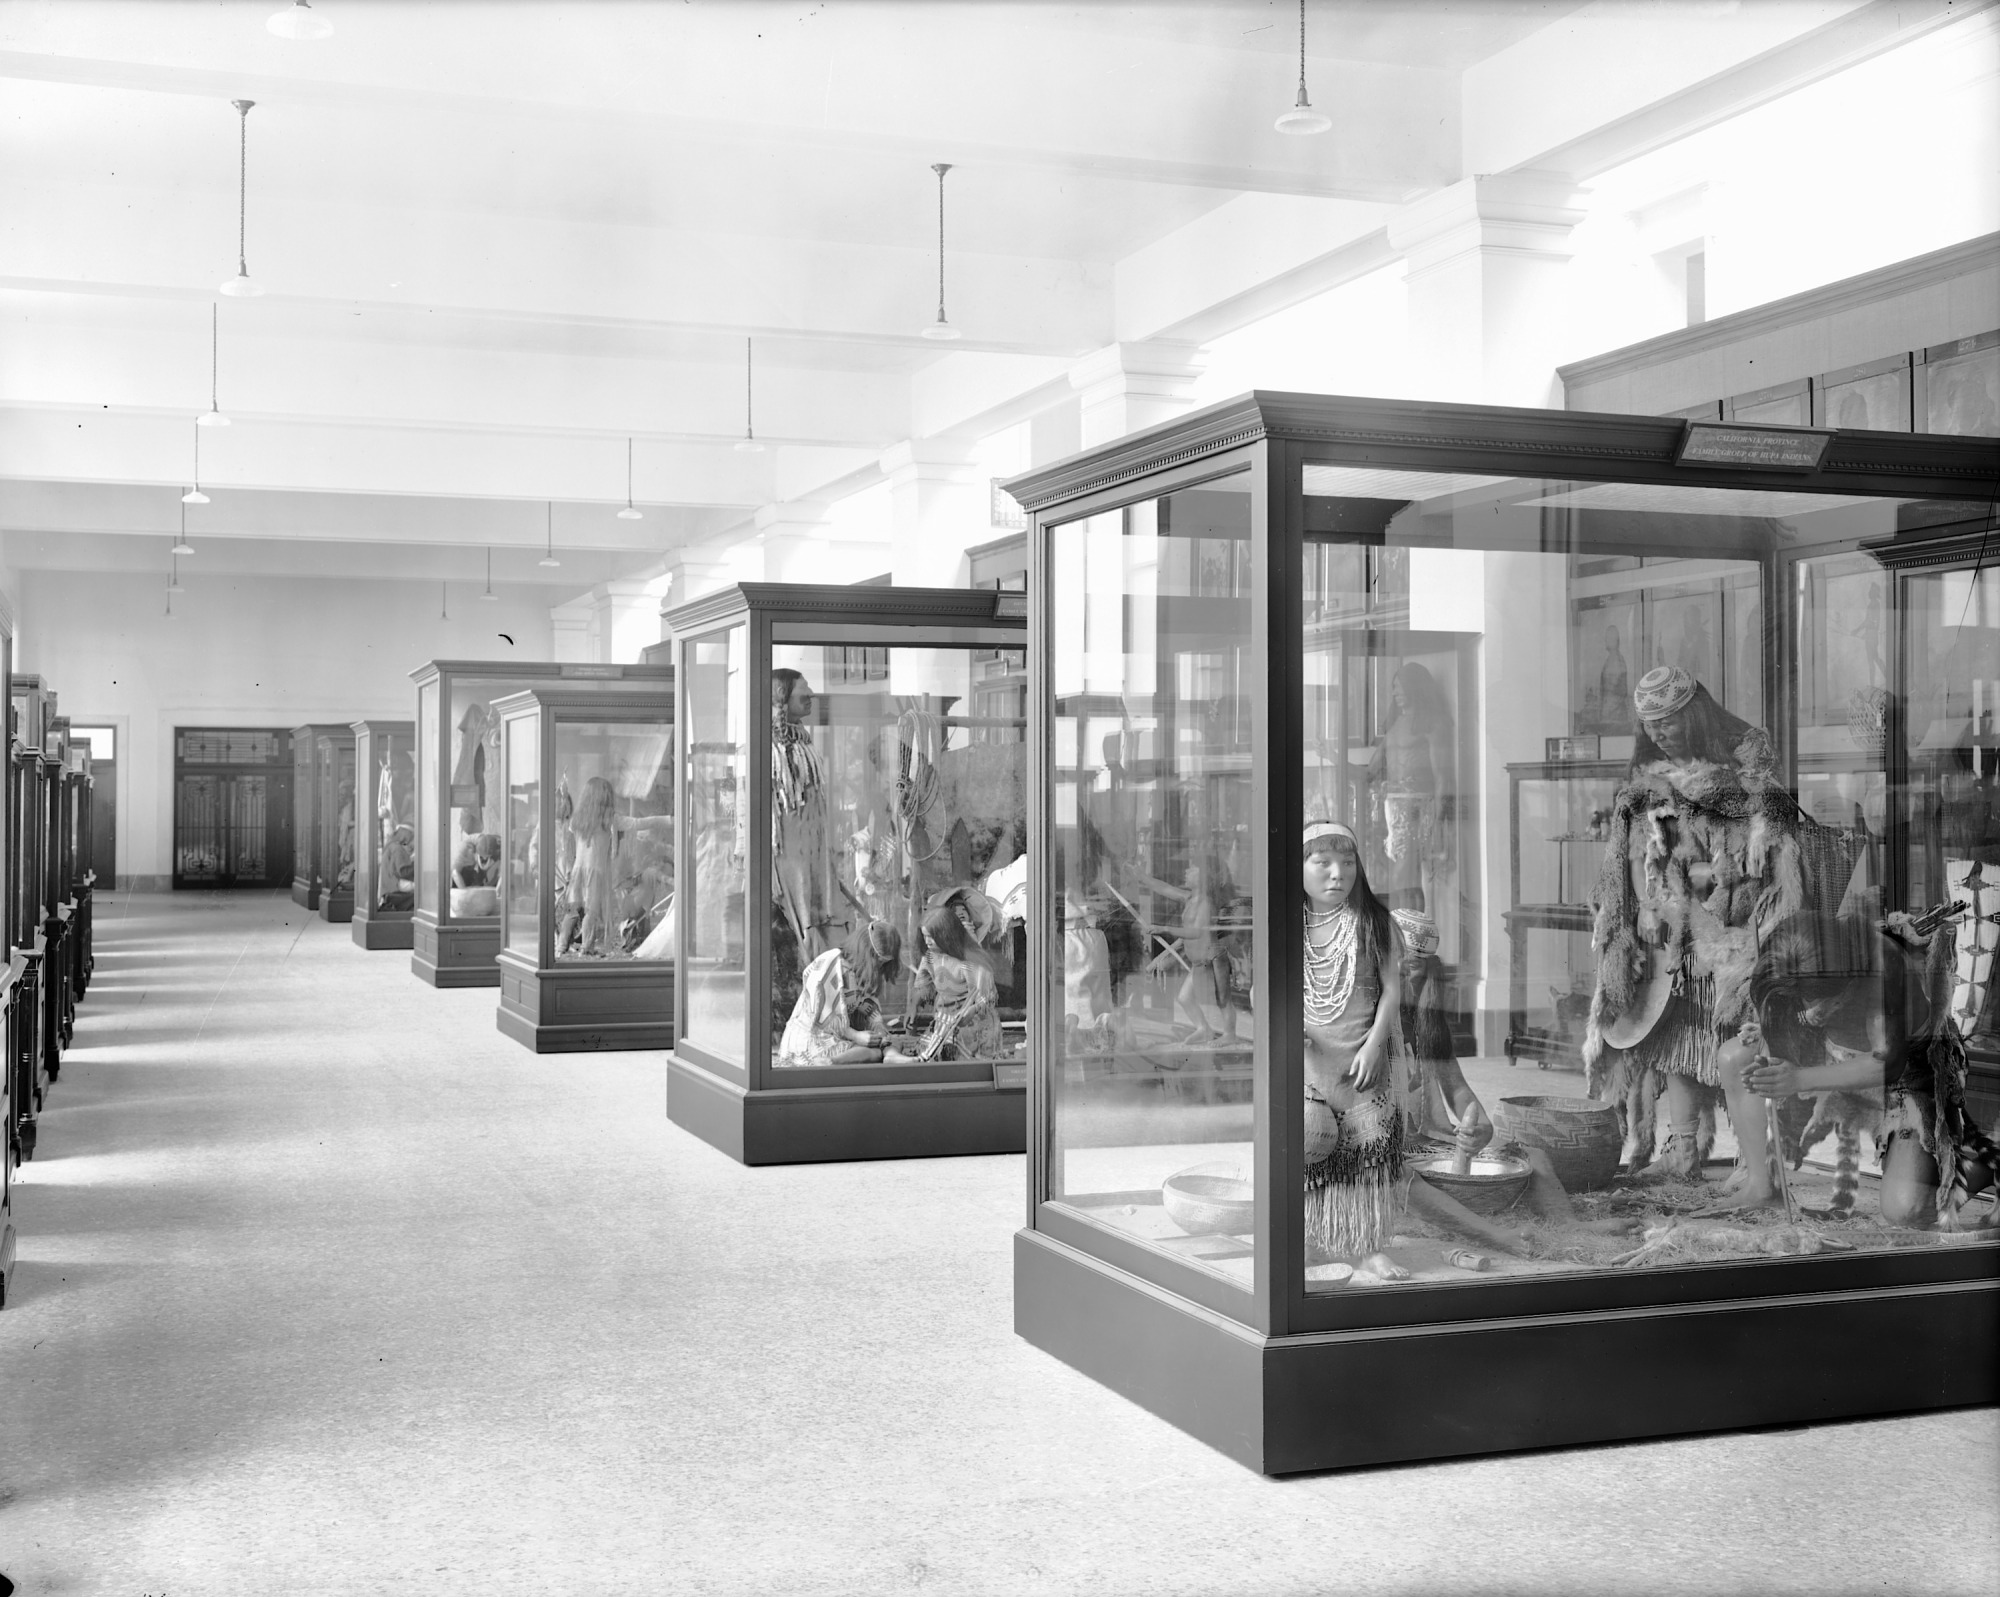 Early Native American Exhibit in new United States National Museum